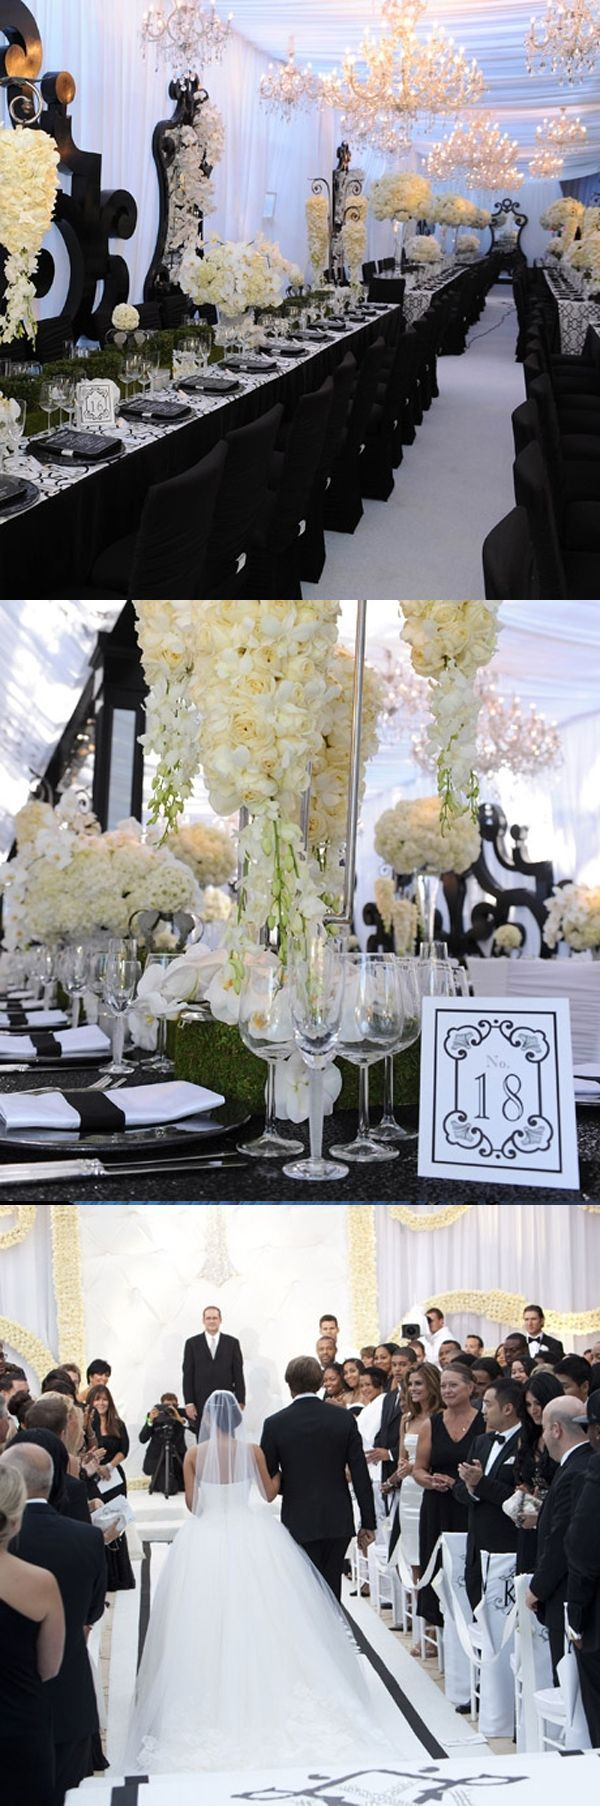 Kim Kardashian Wedding Kardashian Wedding Kim Kardashian Wedding Wedding Decor Elegant